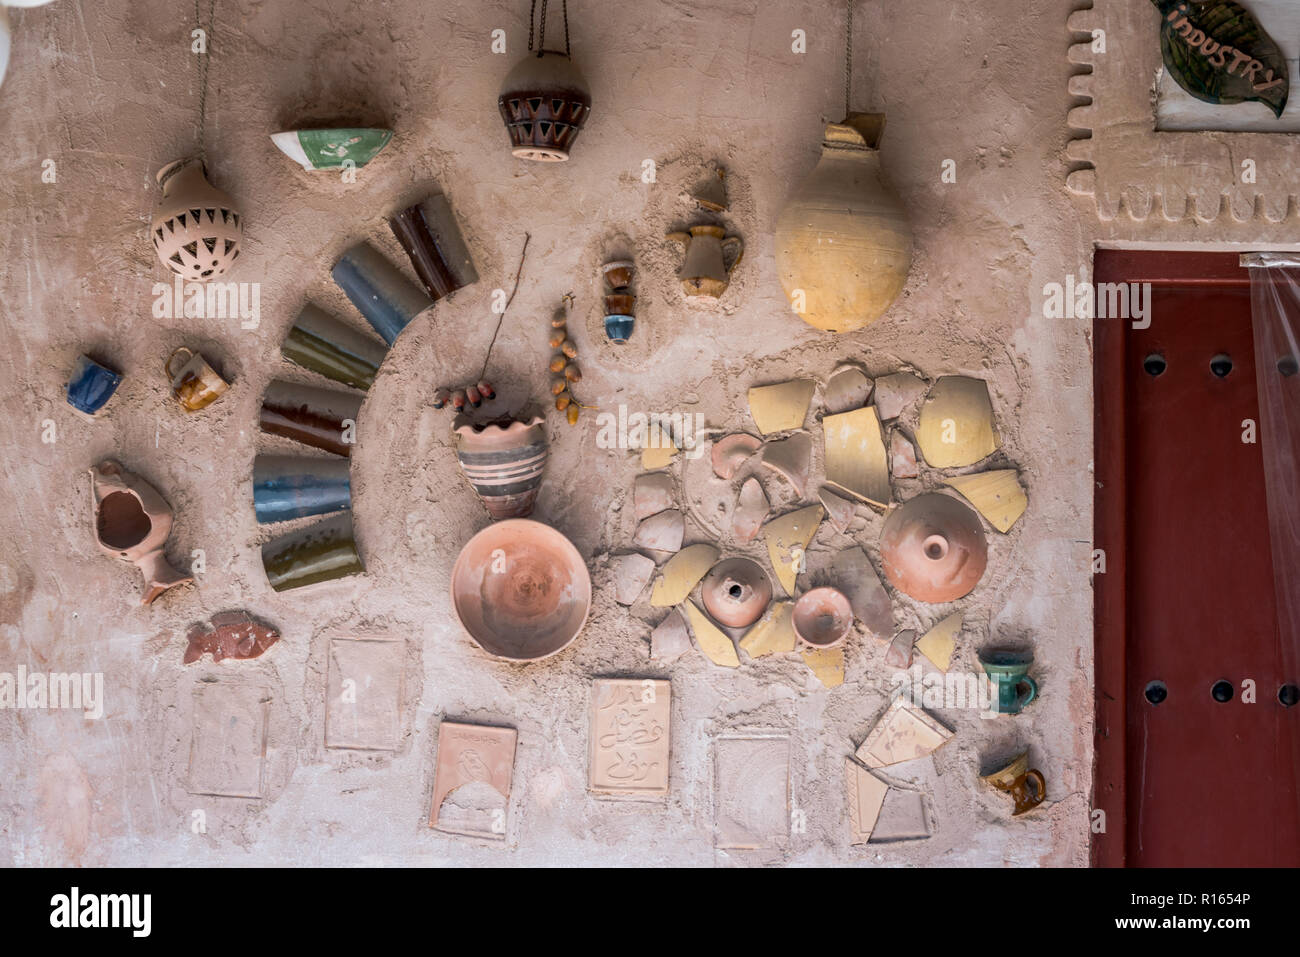 Old hand crafted pottery arranged and installed on the wall at Heritage village Abu Dhabi, UAE - Stock Image